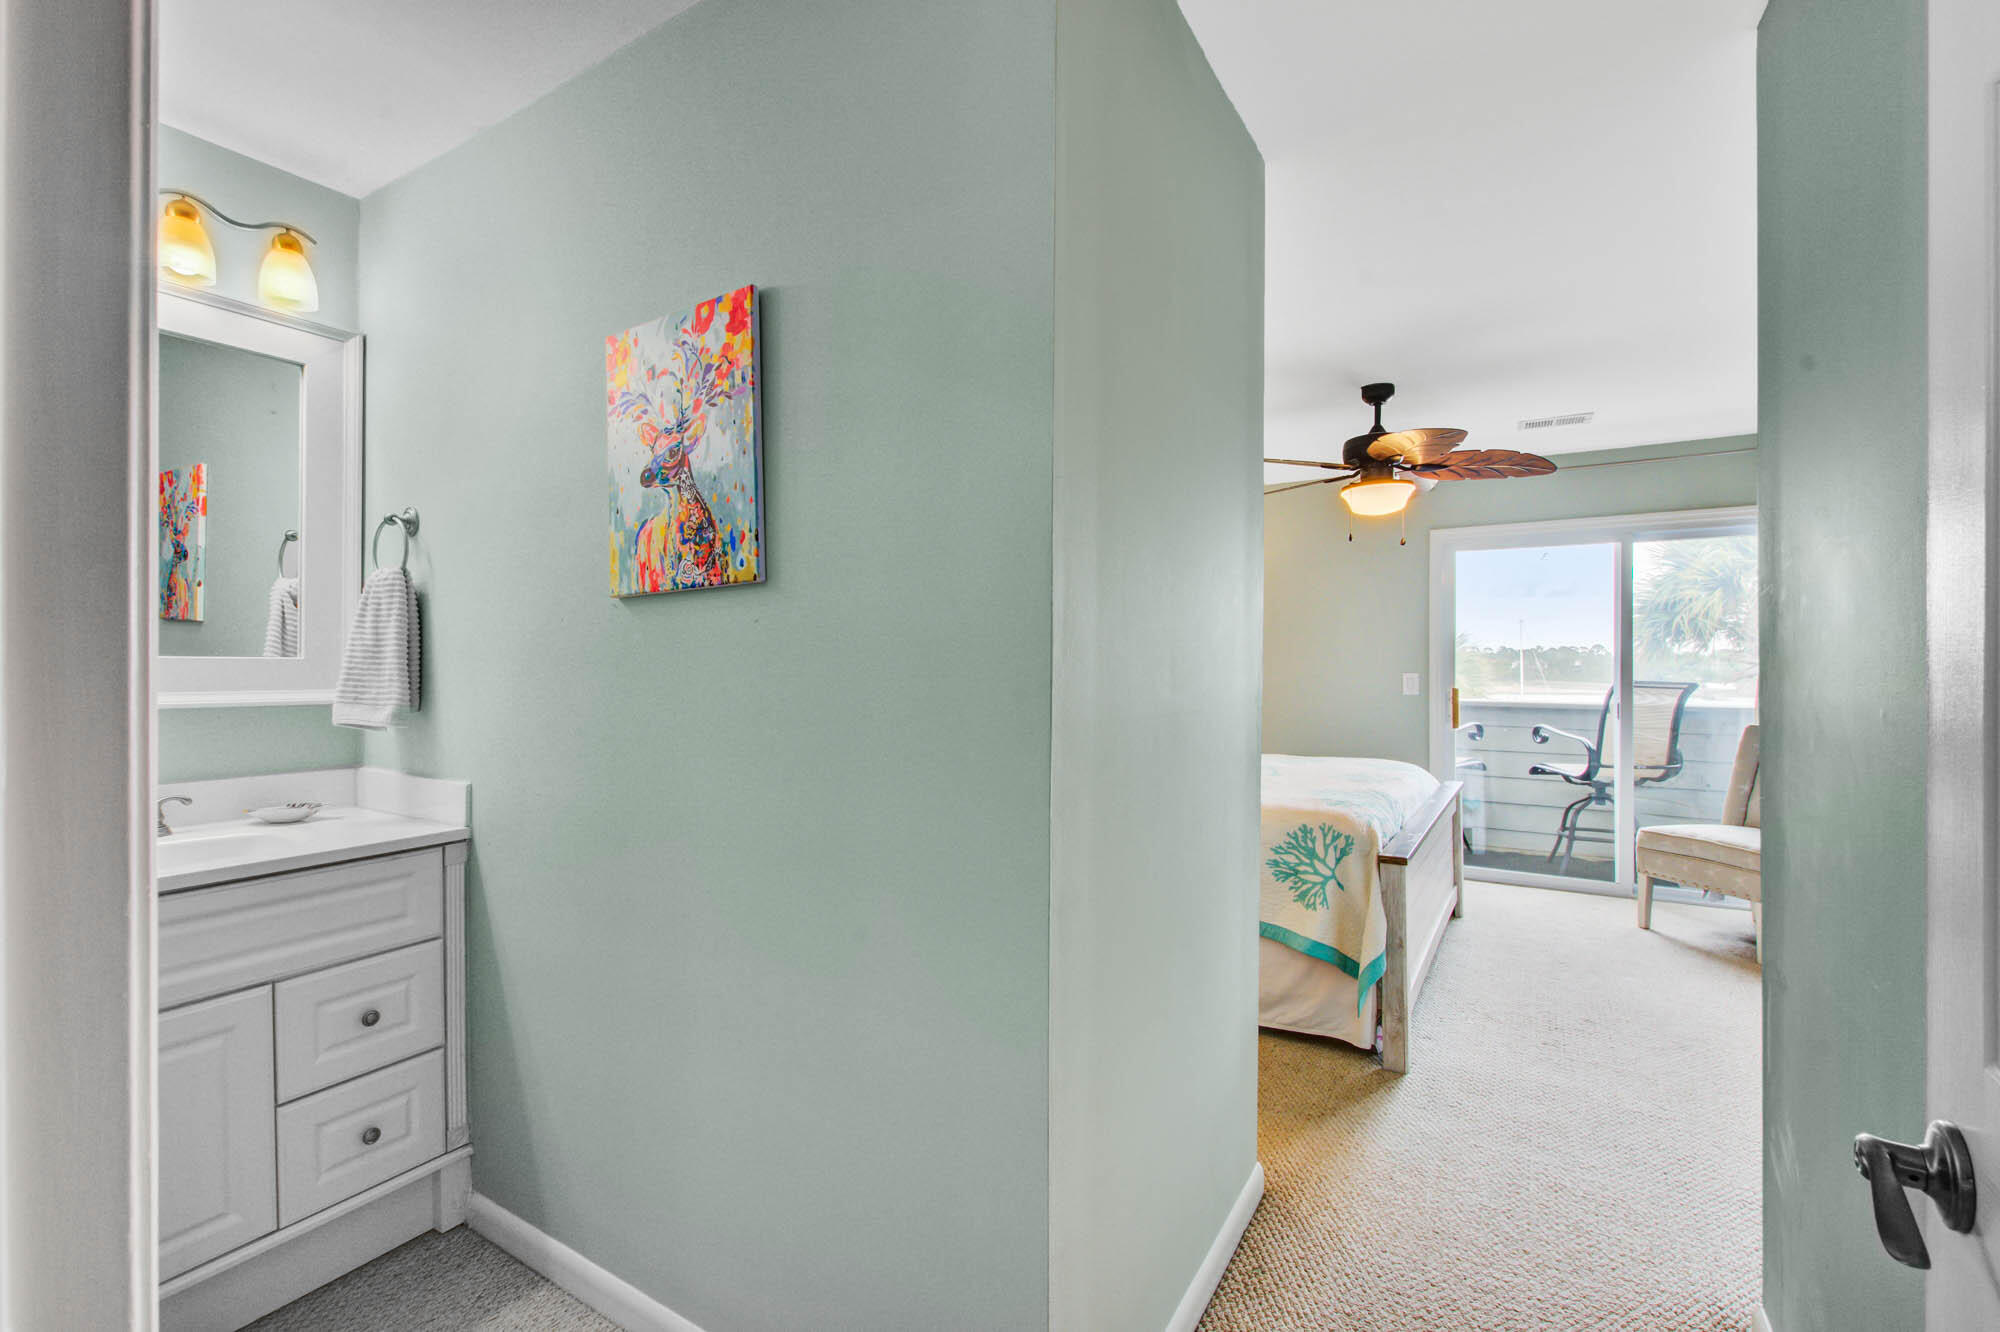 Mariners Cay Homes For Sale - 56 Mariners Cay, Folly Beach, SC - 32